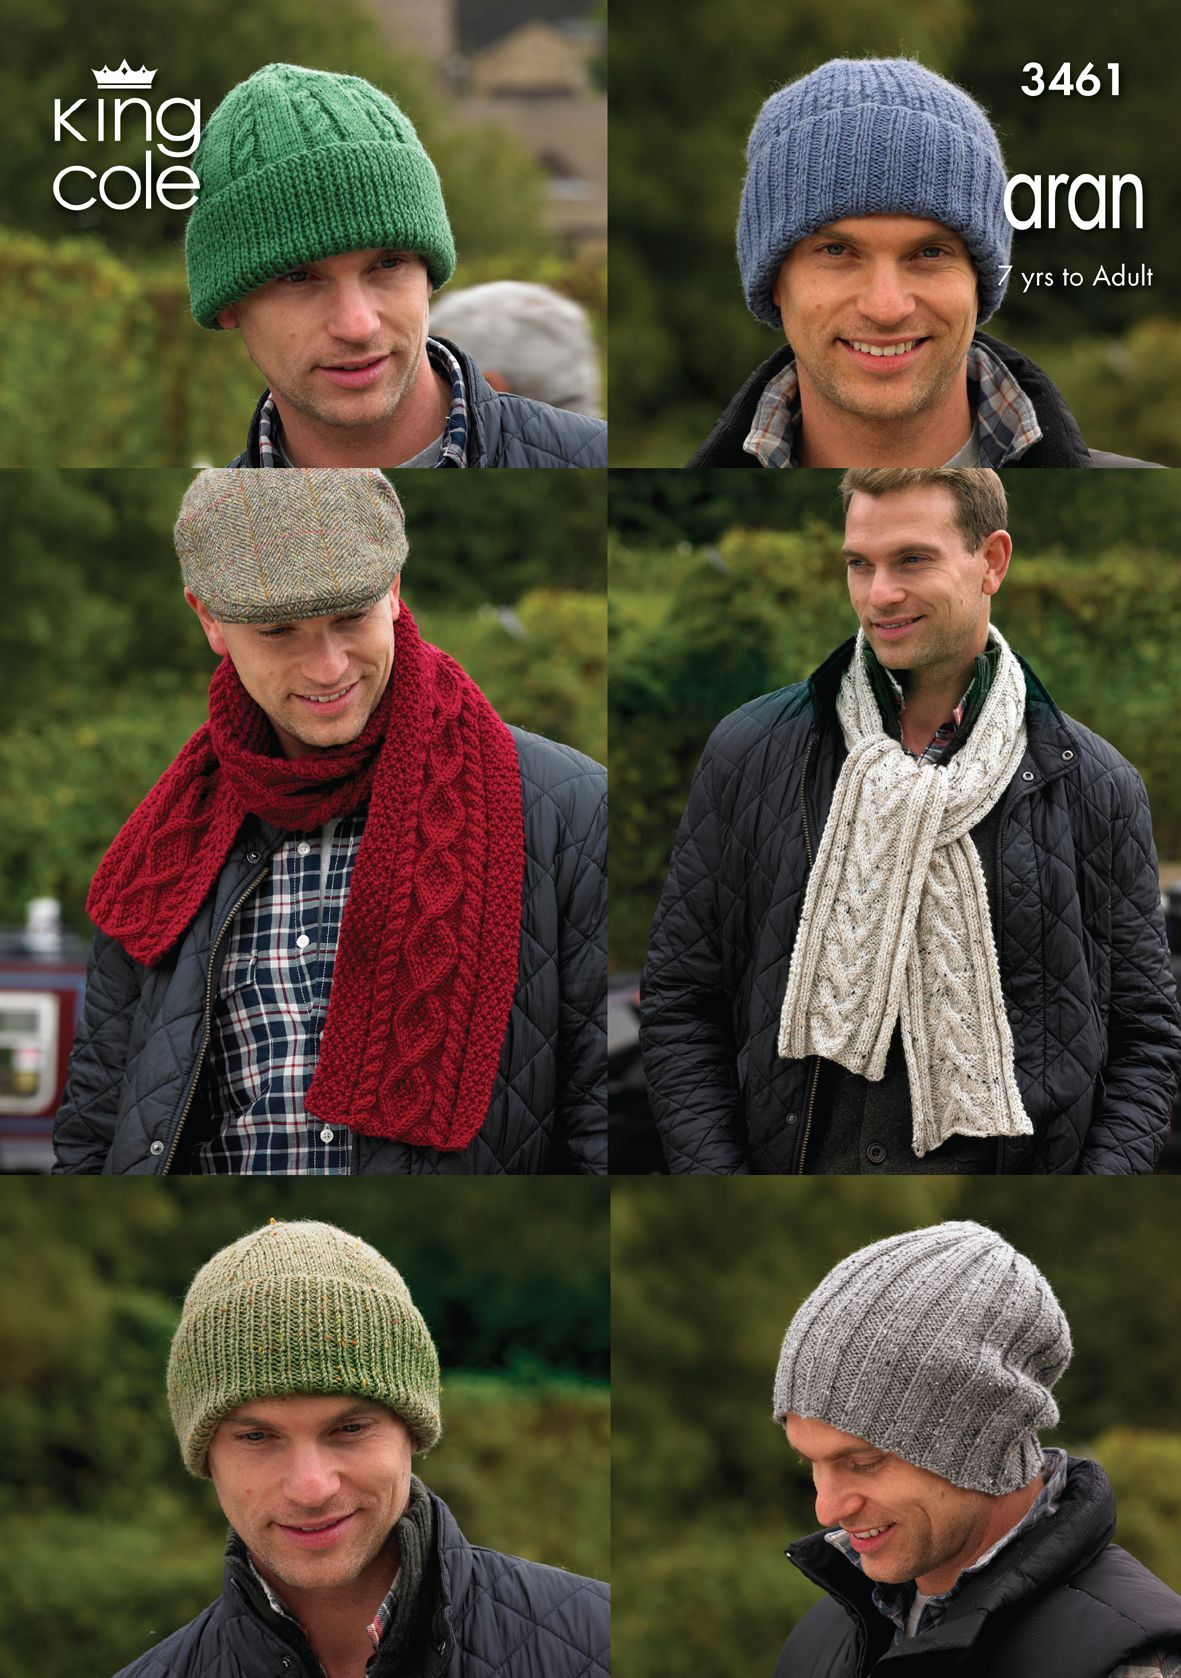 Knitted mens hats and scarves - King Cole  585eaf3842b